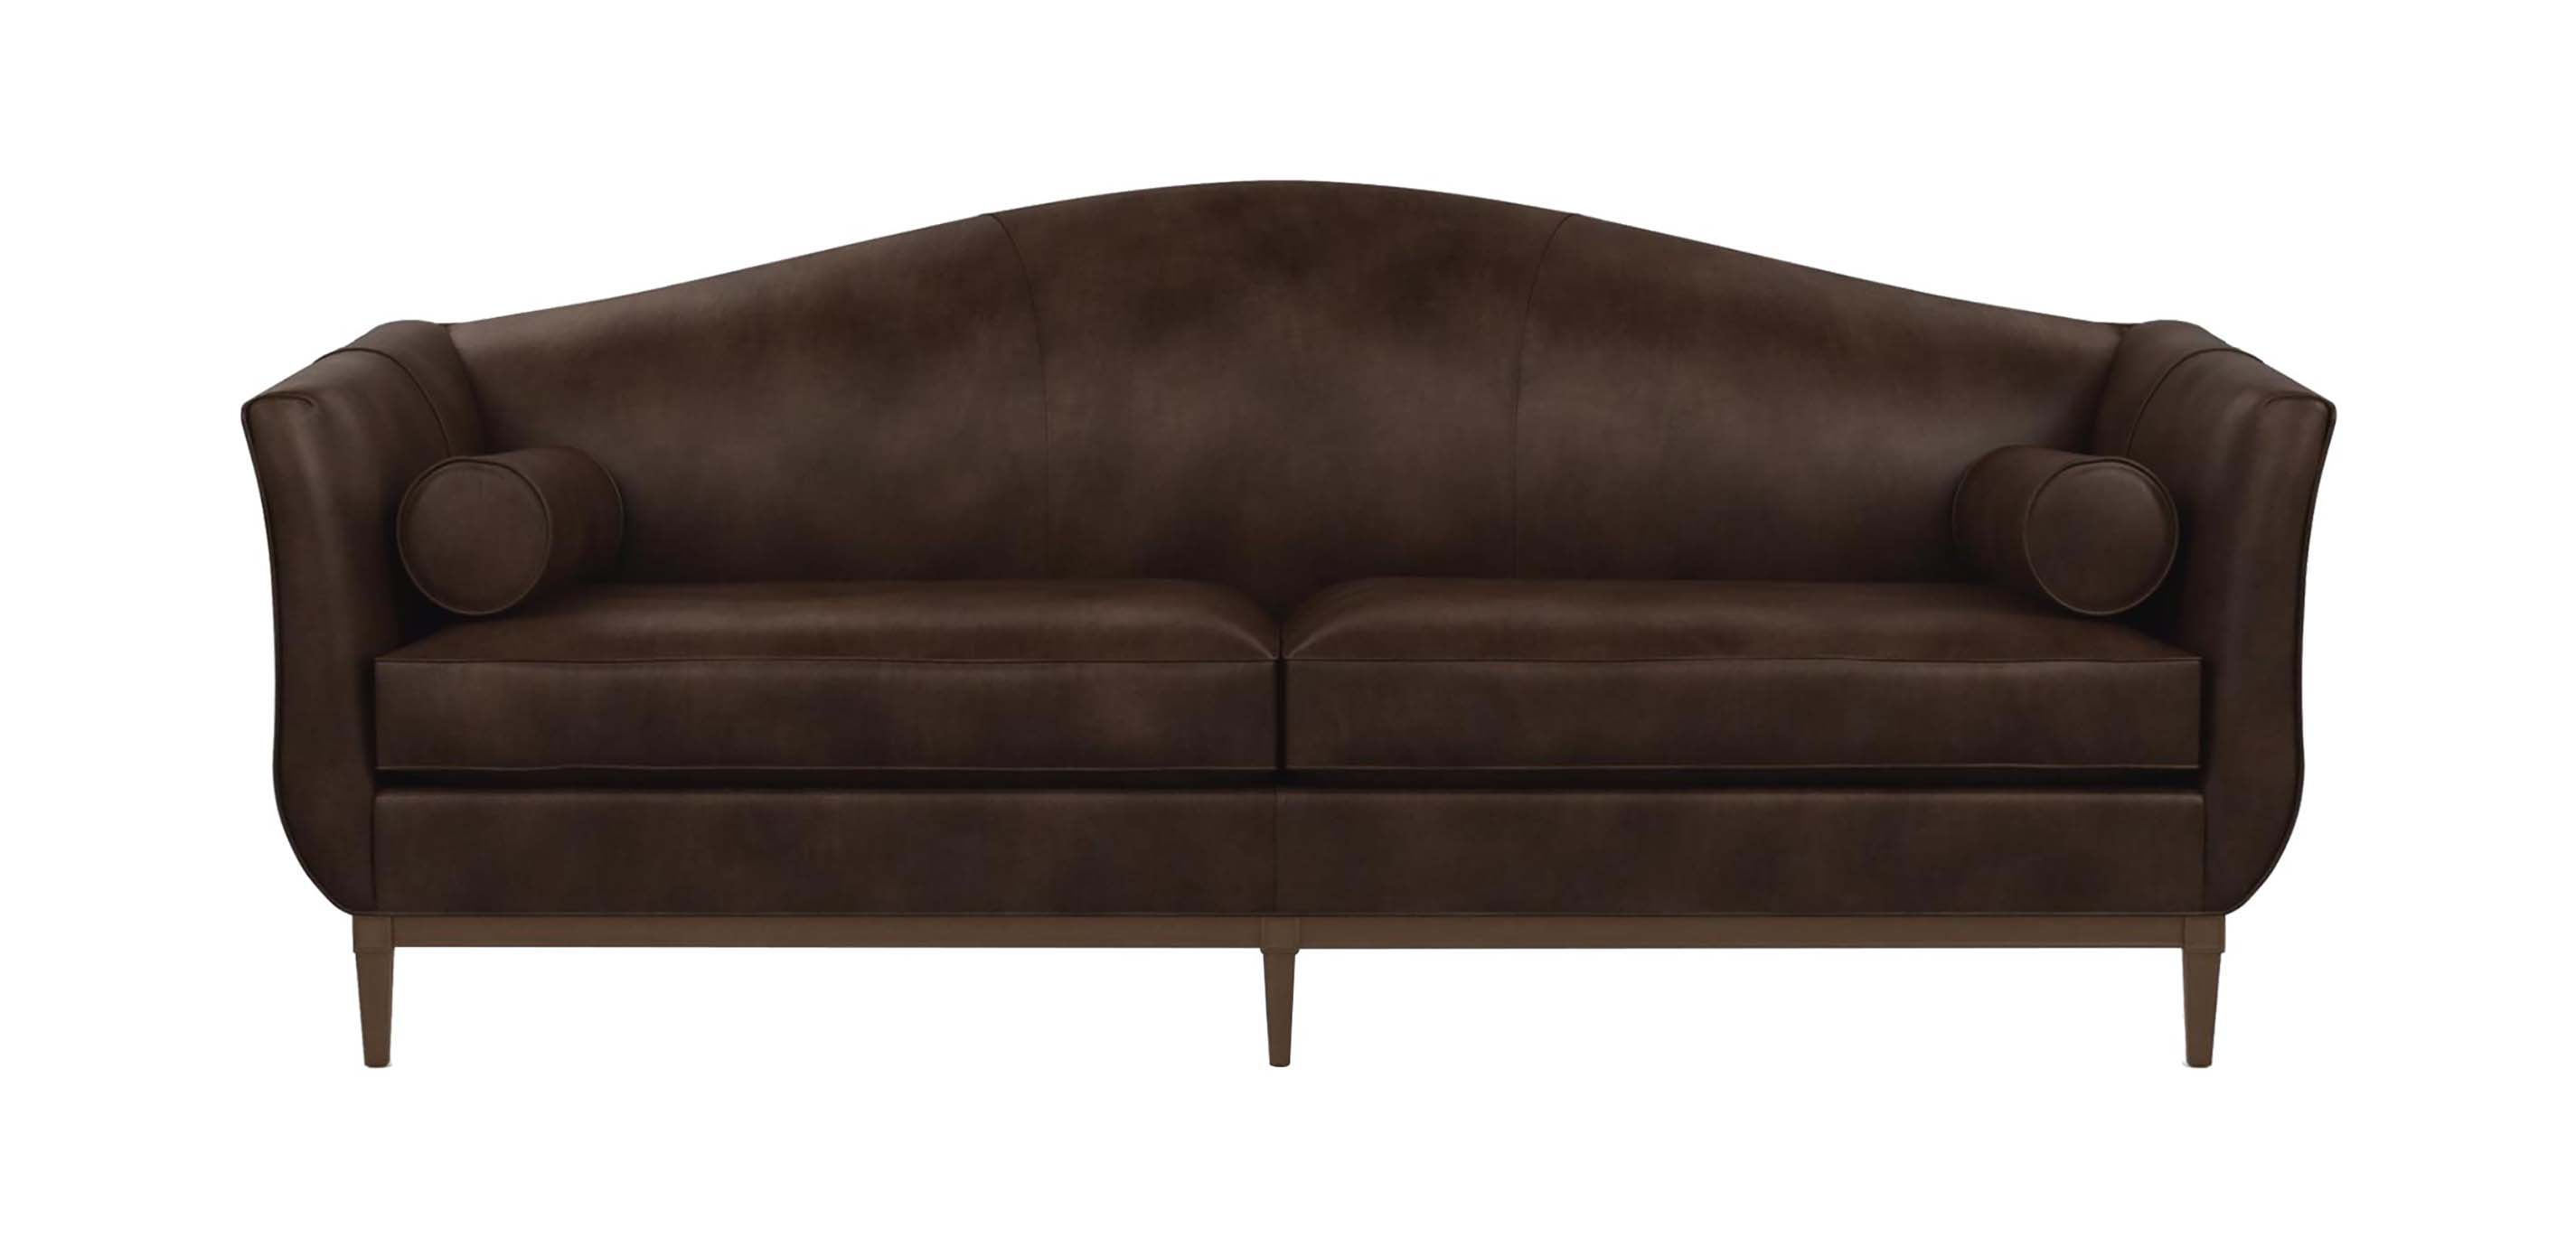 Audrey leather sofa the audrey collection ethan allen for Sofa en l liquidation